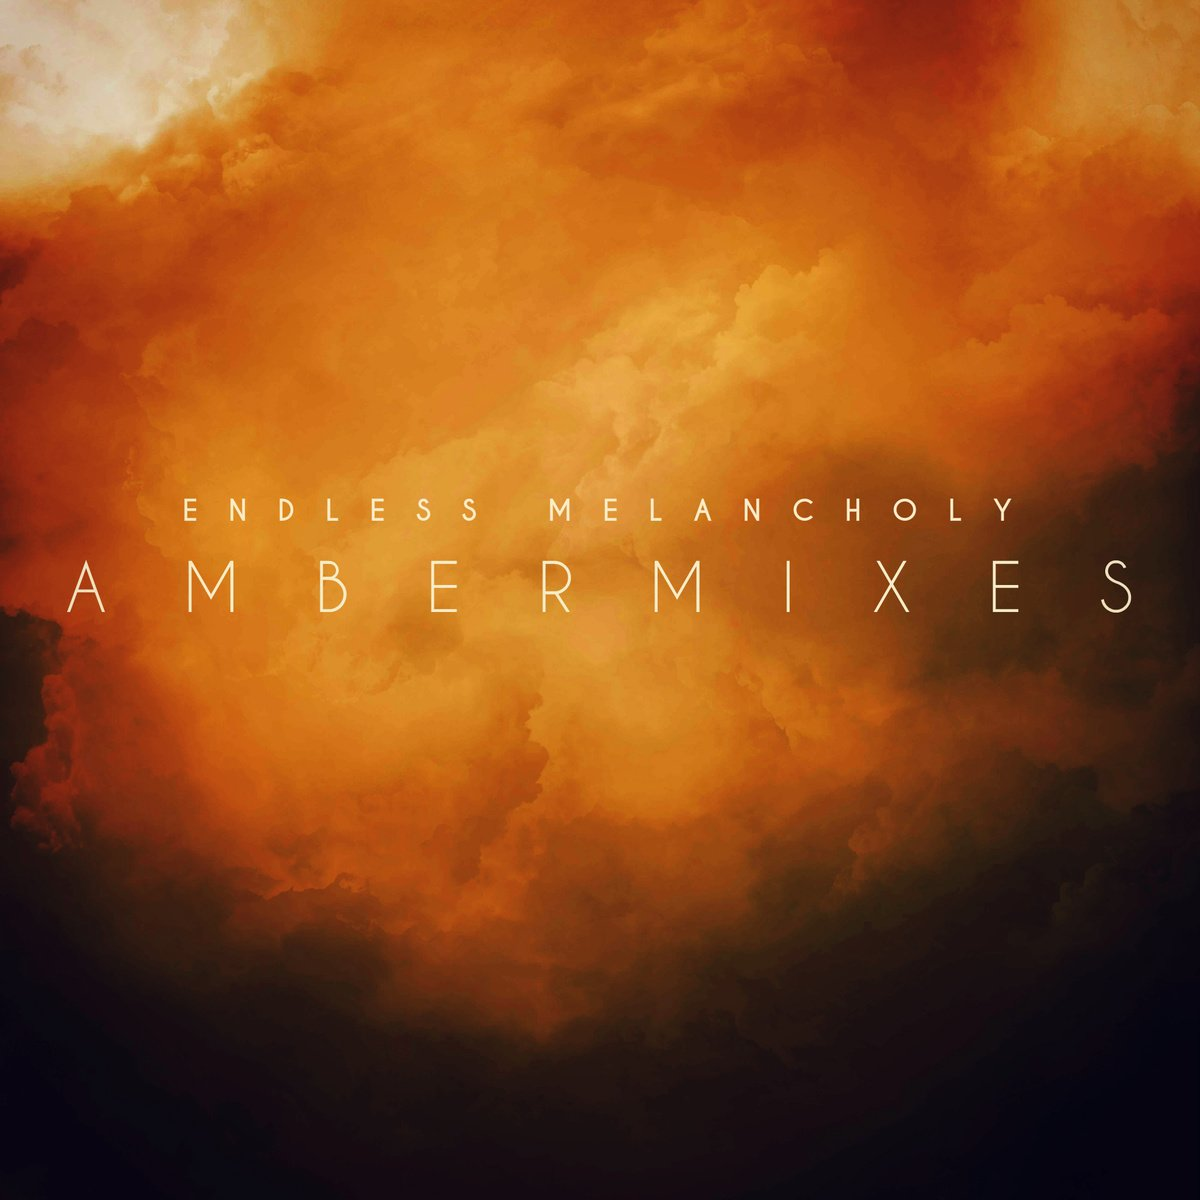 Endless Melancholy - Ambermixes